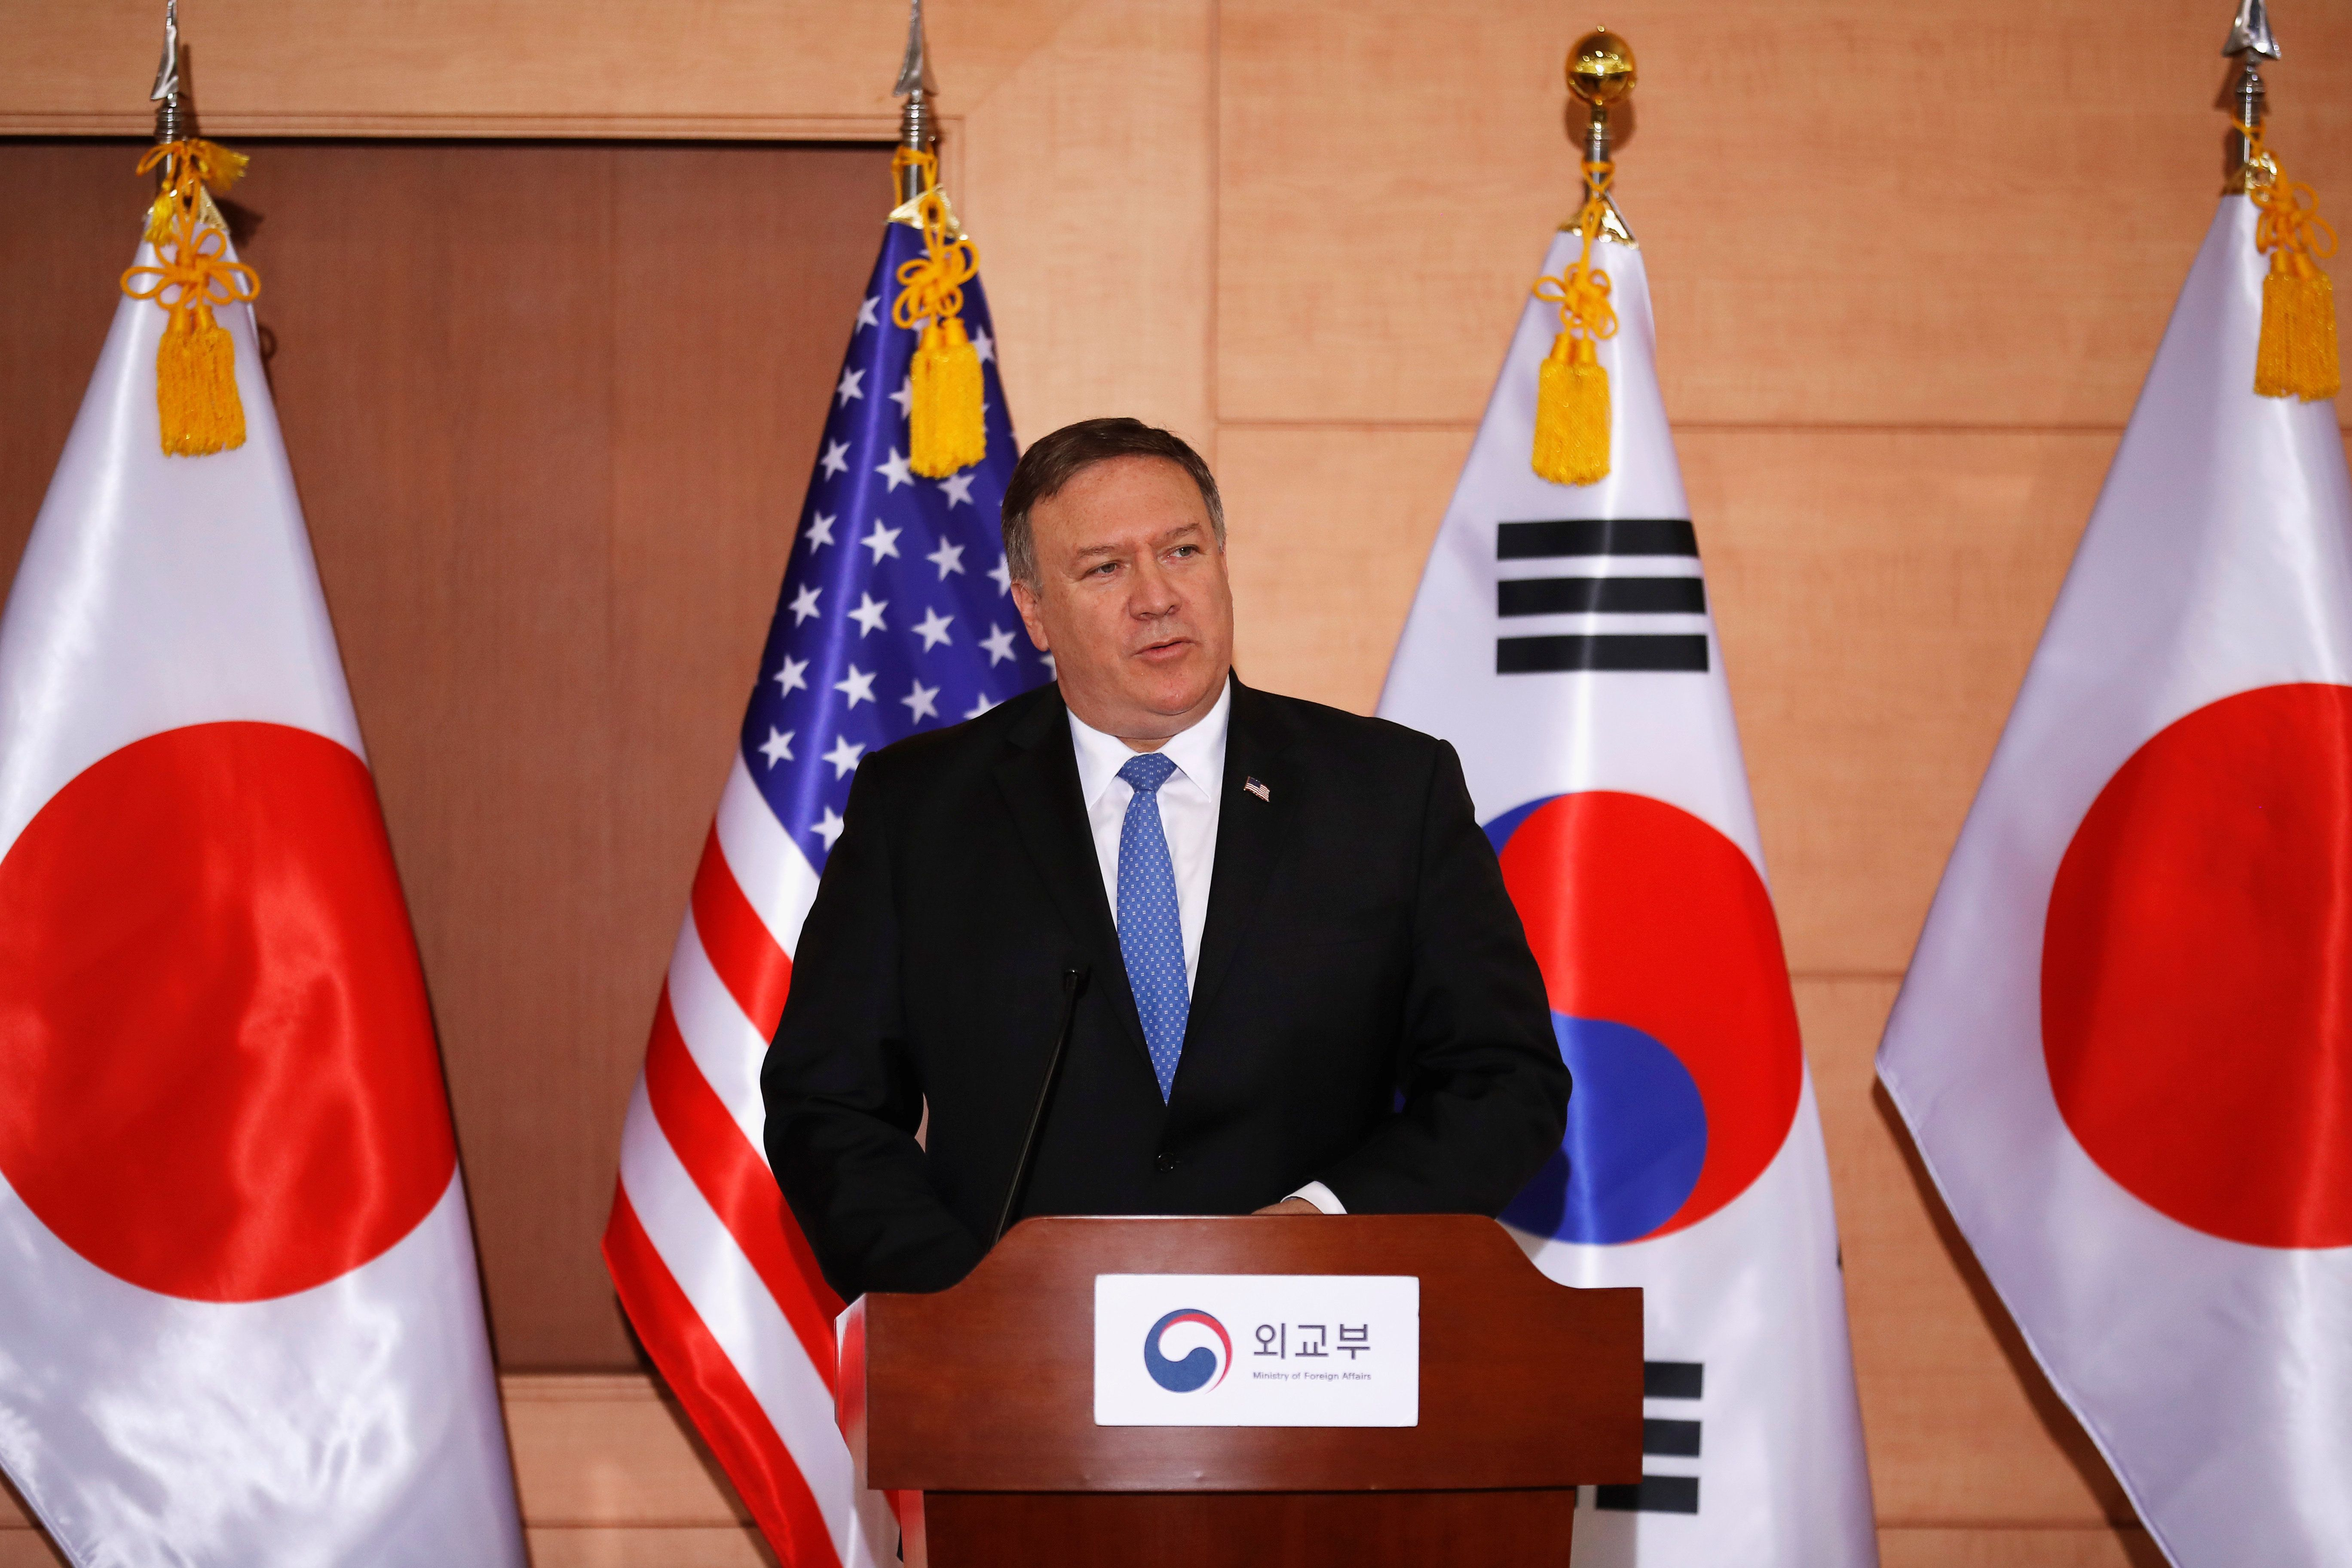 U.S. Secretary of State Mike Pompeo addresses a news conference alongside South Korean Foreign Minister Kang Kyung-wha and Japan's Foreign Minister Taro Kono at the Foreign Ministry in Seoul, South Korea June 14, 2018. REUTERS/Kim Hong-ji/Pool